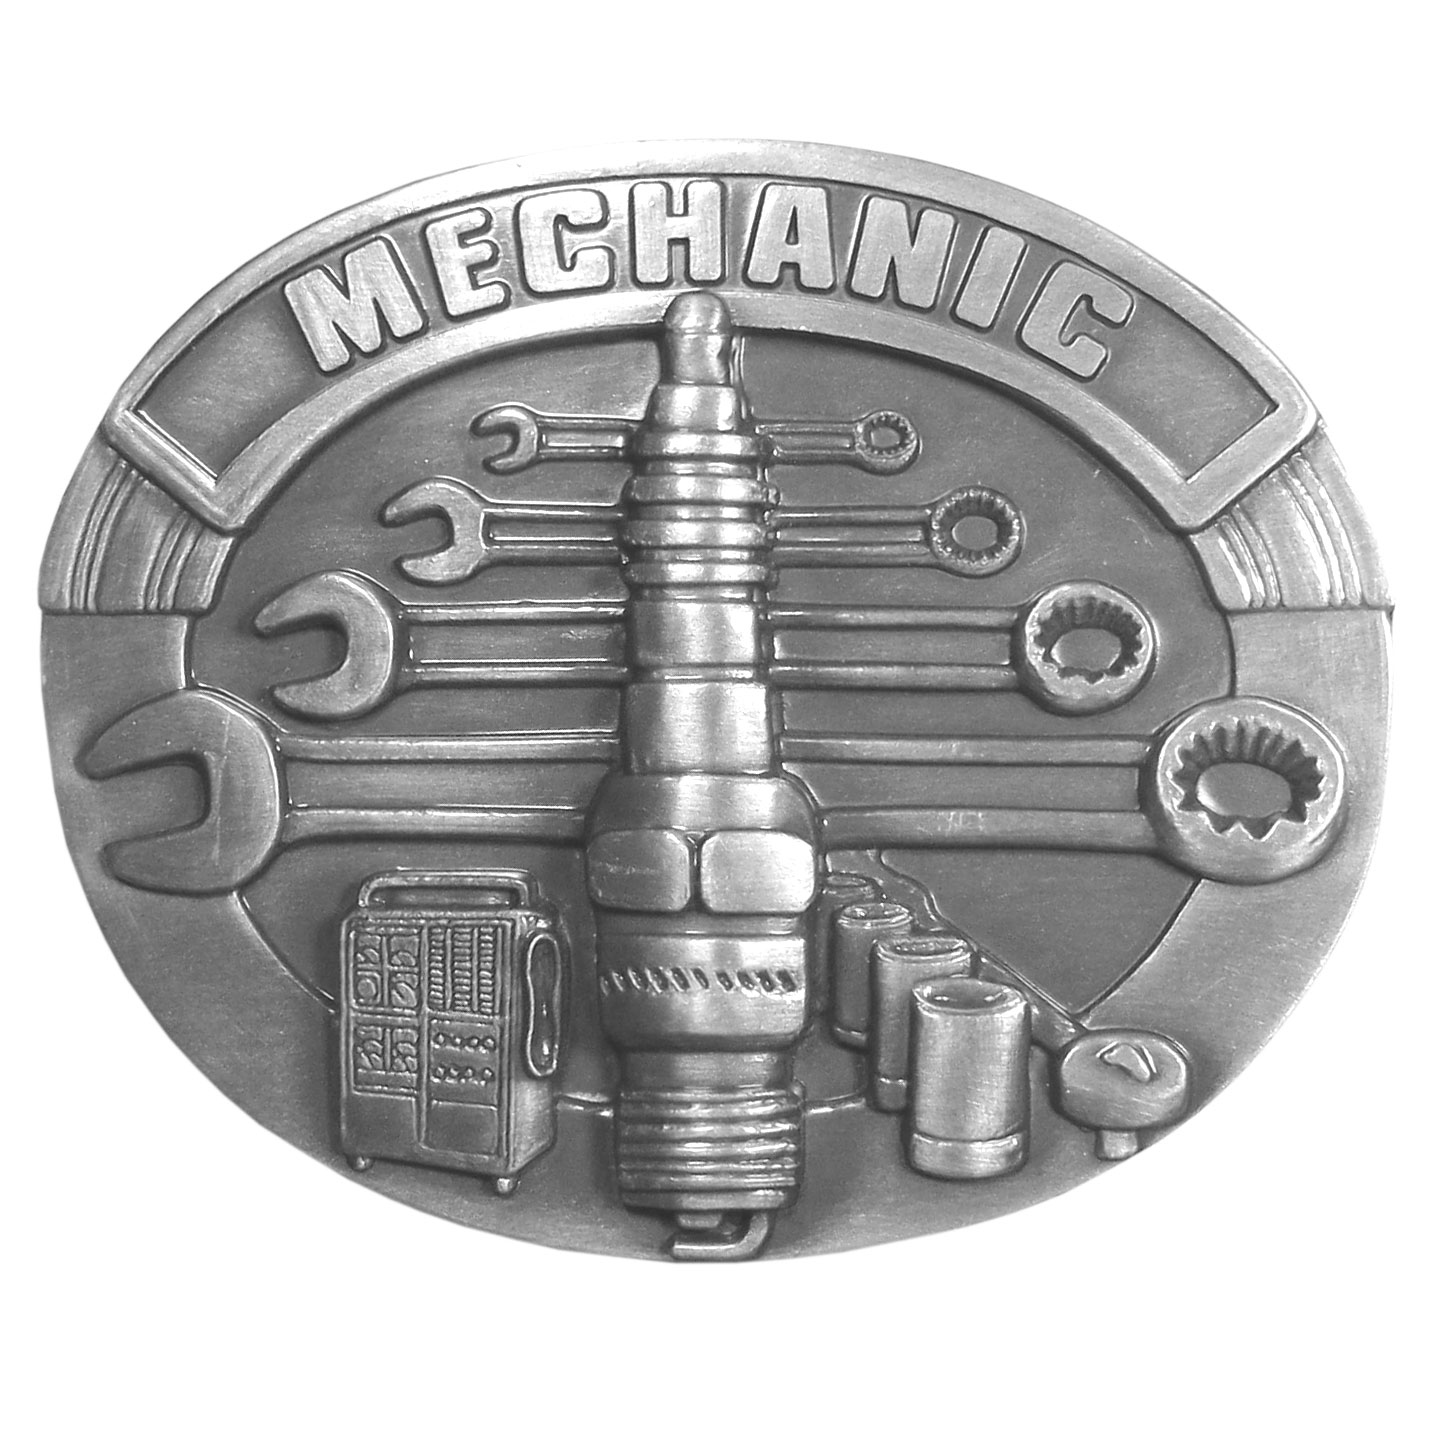 "Mechanic Antiqued Belt Buckle - Mechanic is proudly written on the top of this buckle. A spark plug is centered on the buckle surrounded by tools. This exquistely carved buckle is made of fully cast metal with a standard bale that fits up to 2"" belts."